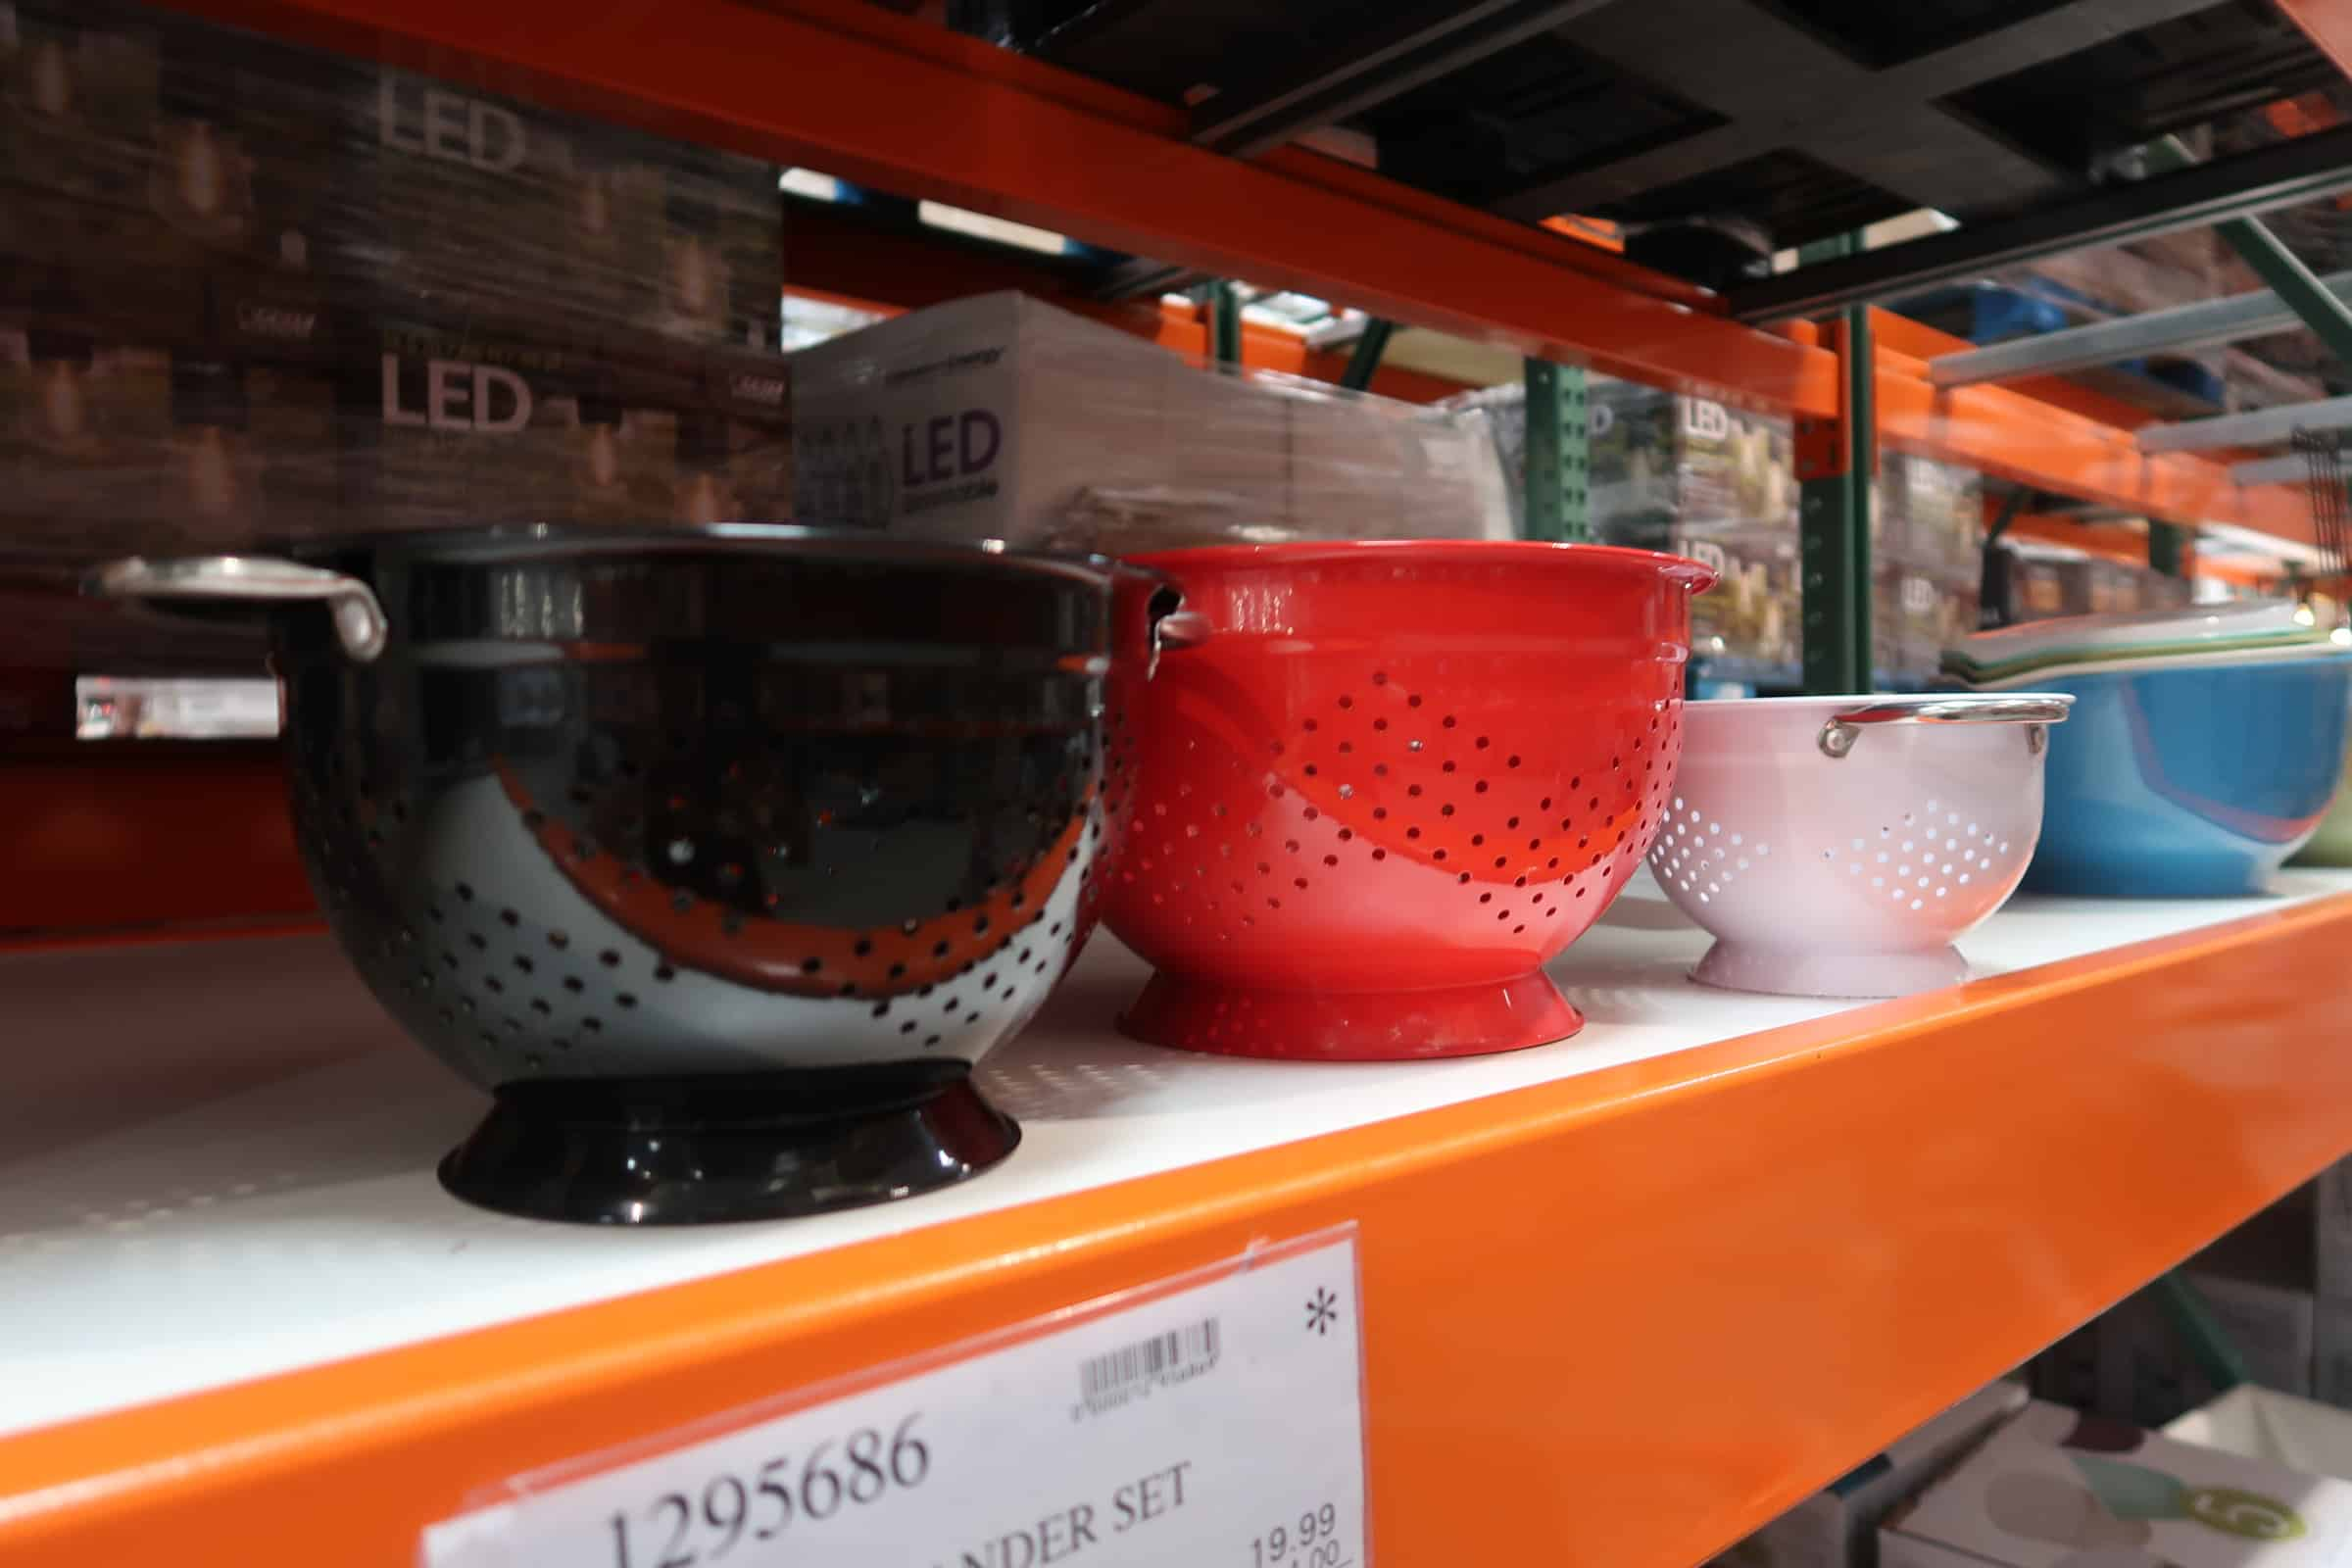 stainless steel strainers at costco